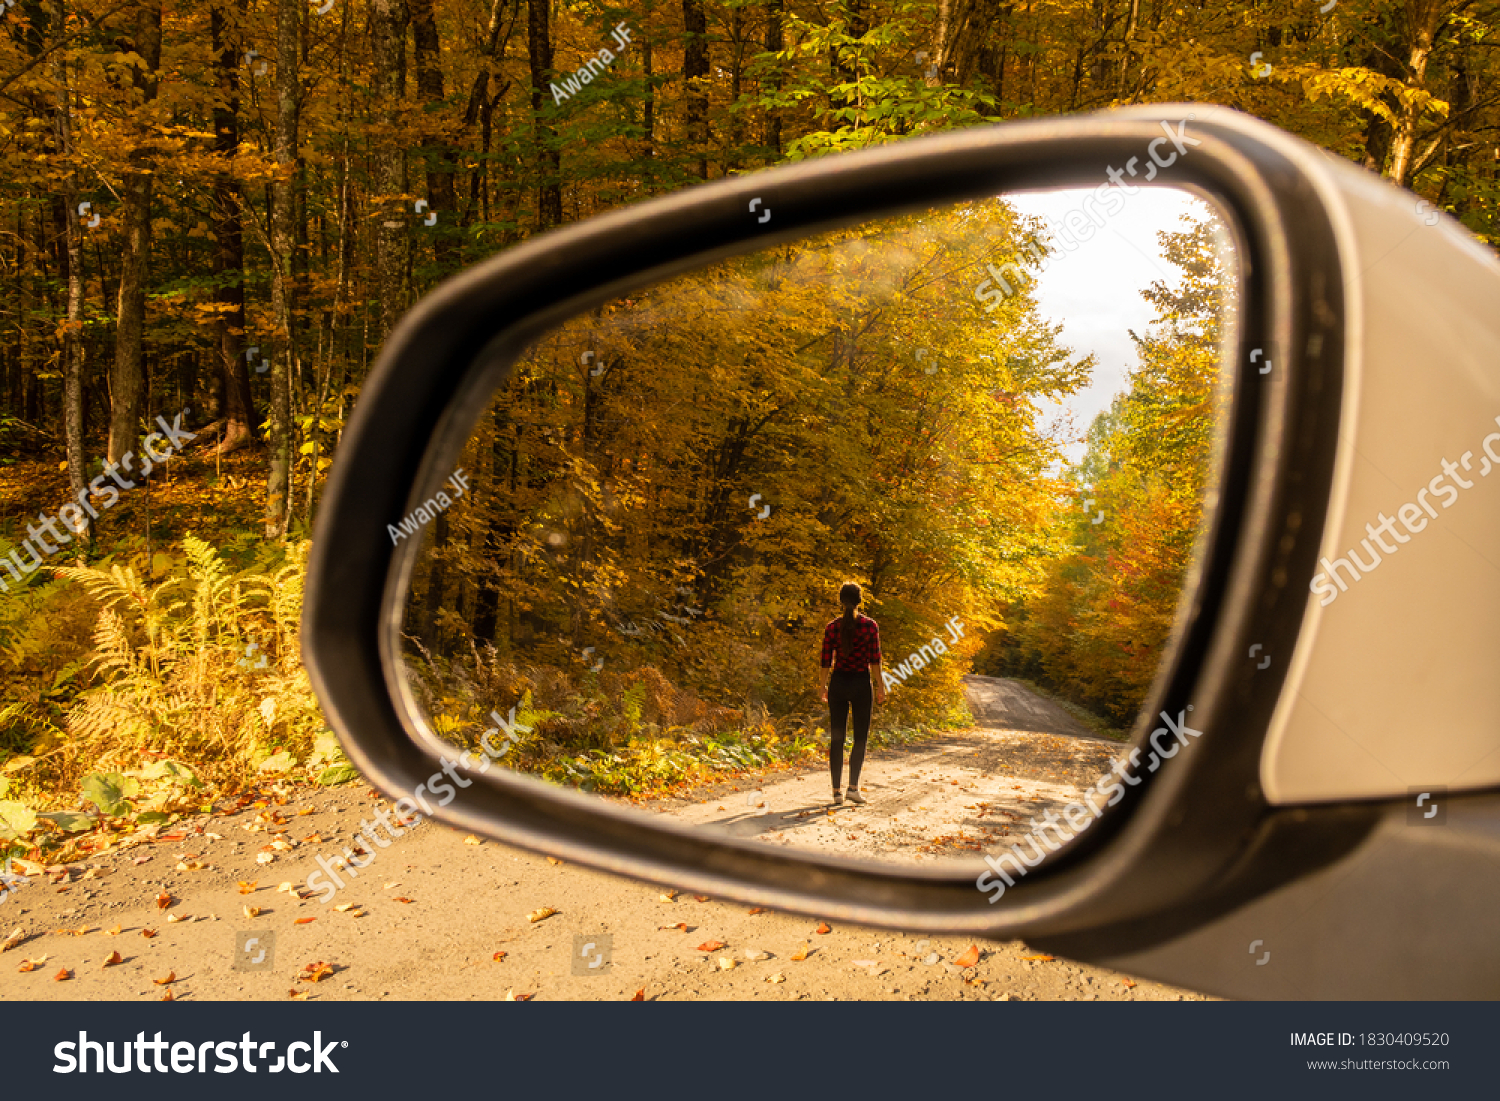 stock-photo-wing-mirror-reflecting-a-wom